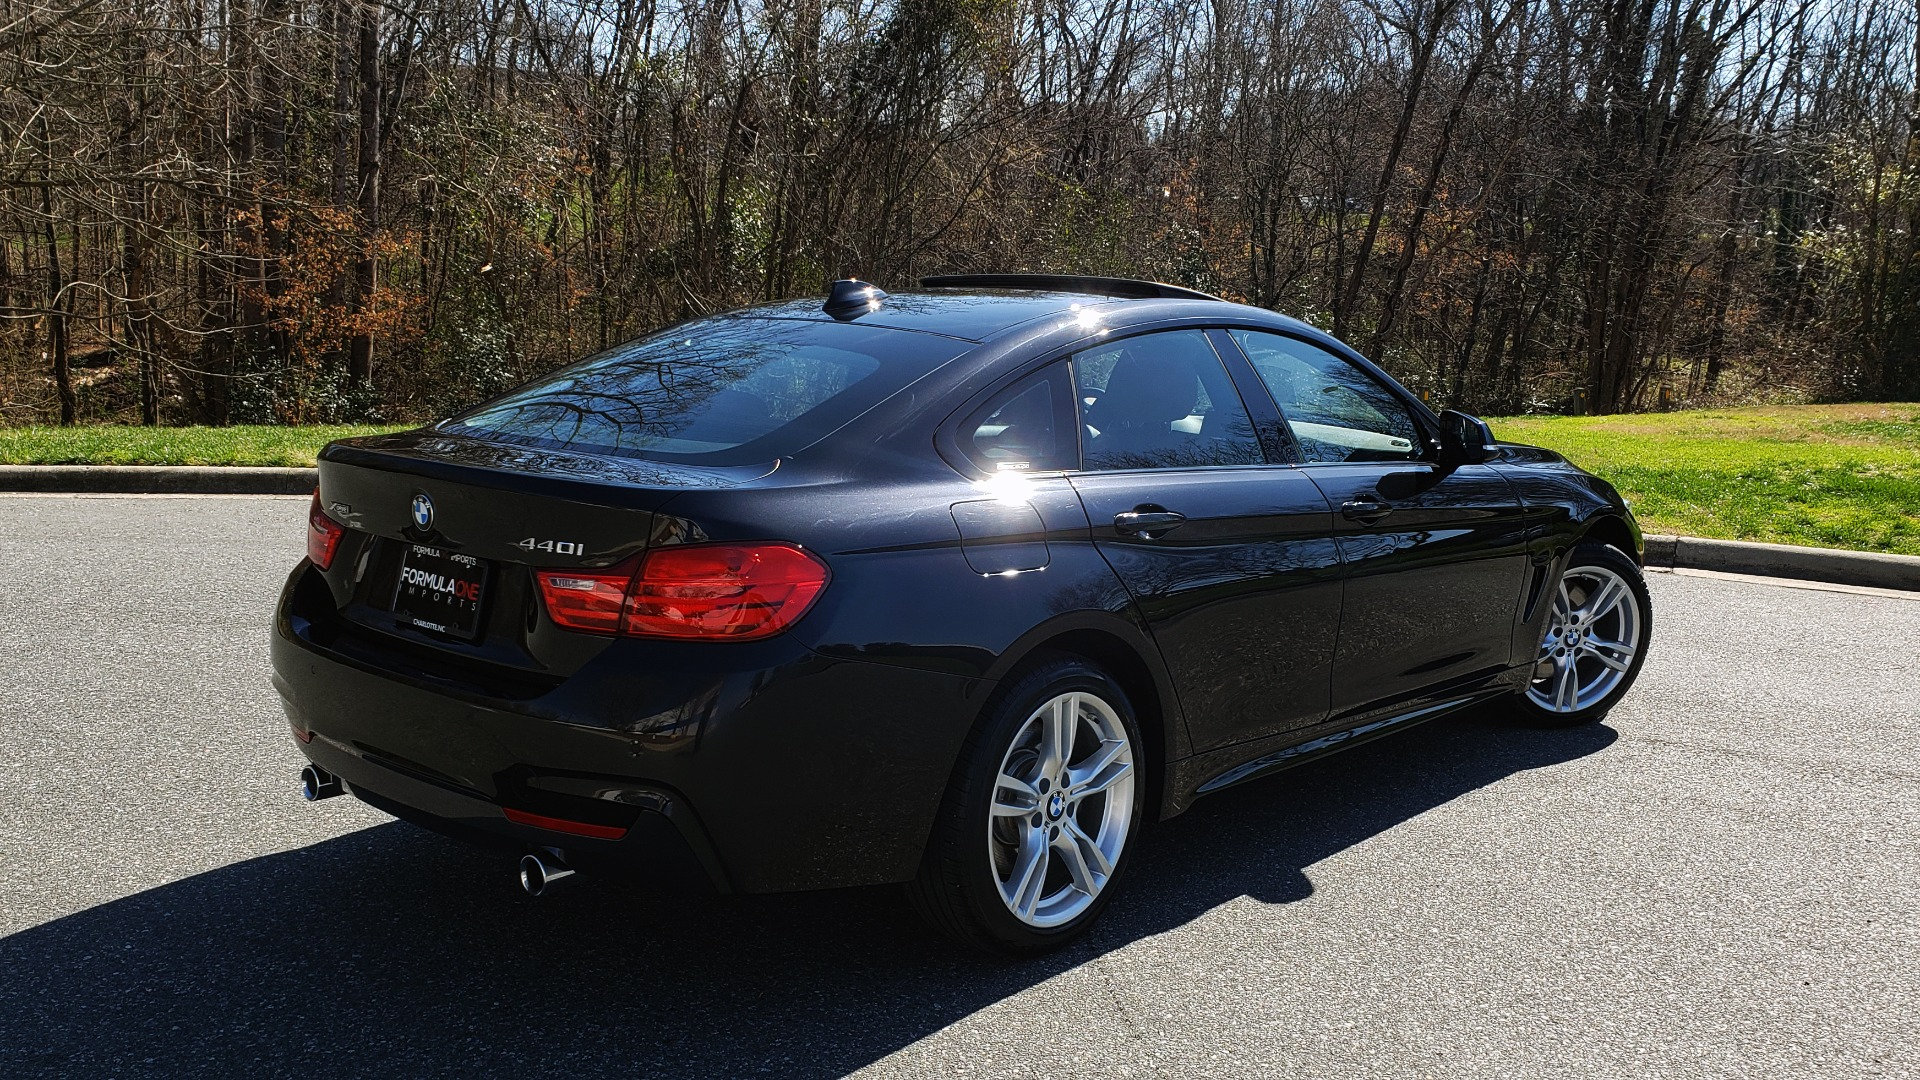 Used 2017 BMW 4 SERIES 440i XDRIVE M-SPORT / TECH / CLD WTHR / DRVR ASST PLUS / LIGHTING for sale Sold at Formula Imports in Charlotte NC 28227 7